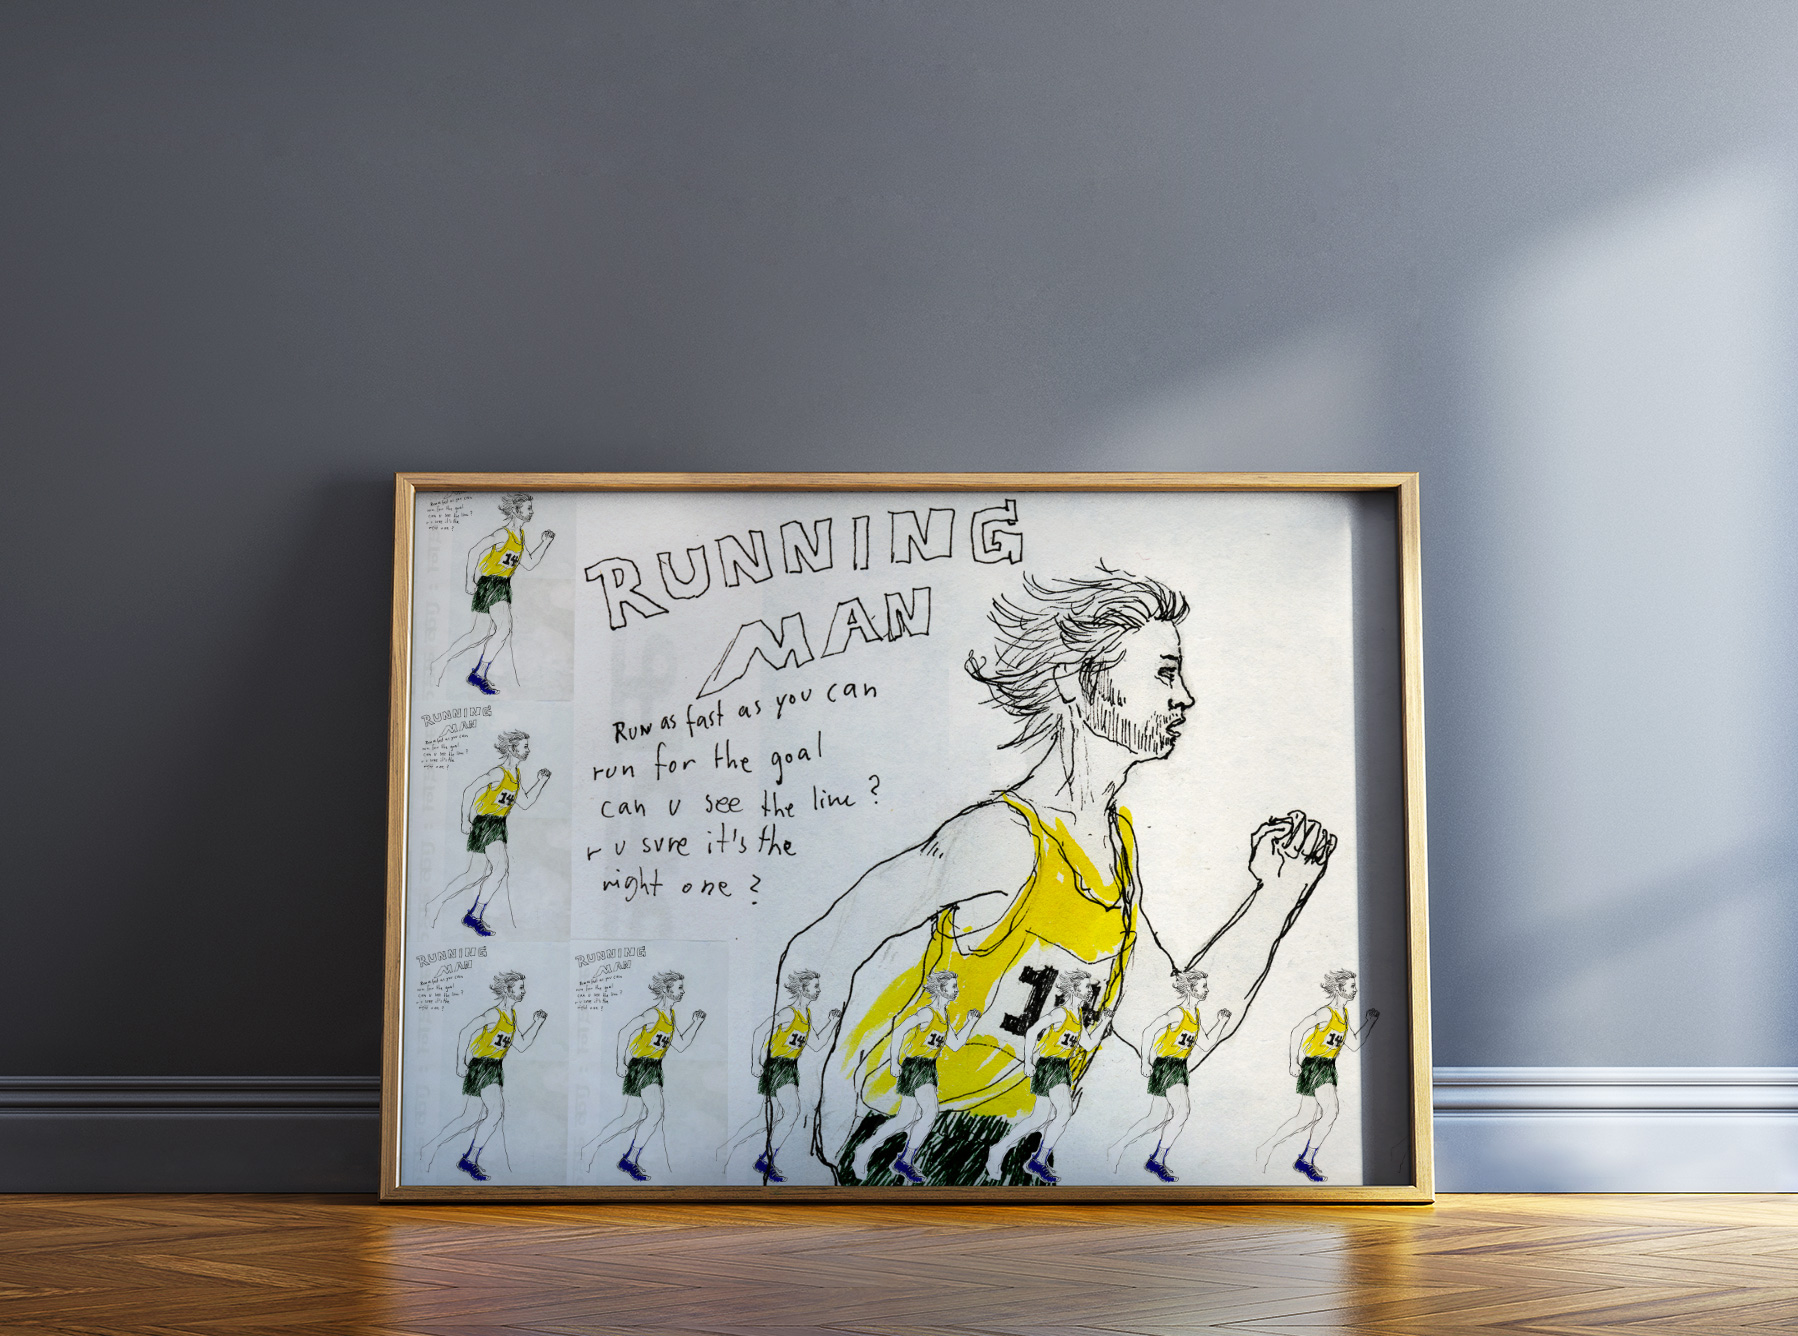 art-prints, gliceé, figurative, illustrative, portraiture, bodies, sport, white, yellow, ink, paper, amusing, men, Buy original high quality art. Paintings, drawings, limited edition prints & posters by talented artists.